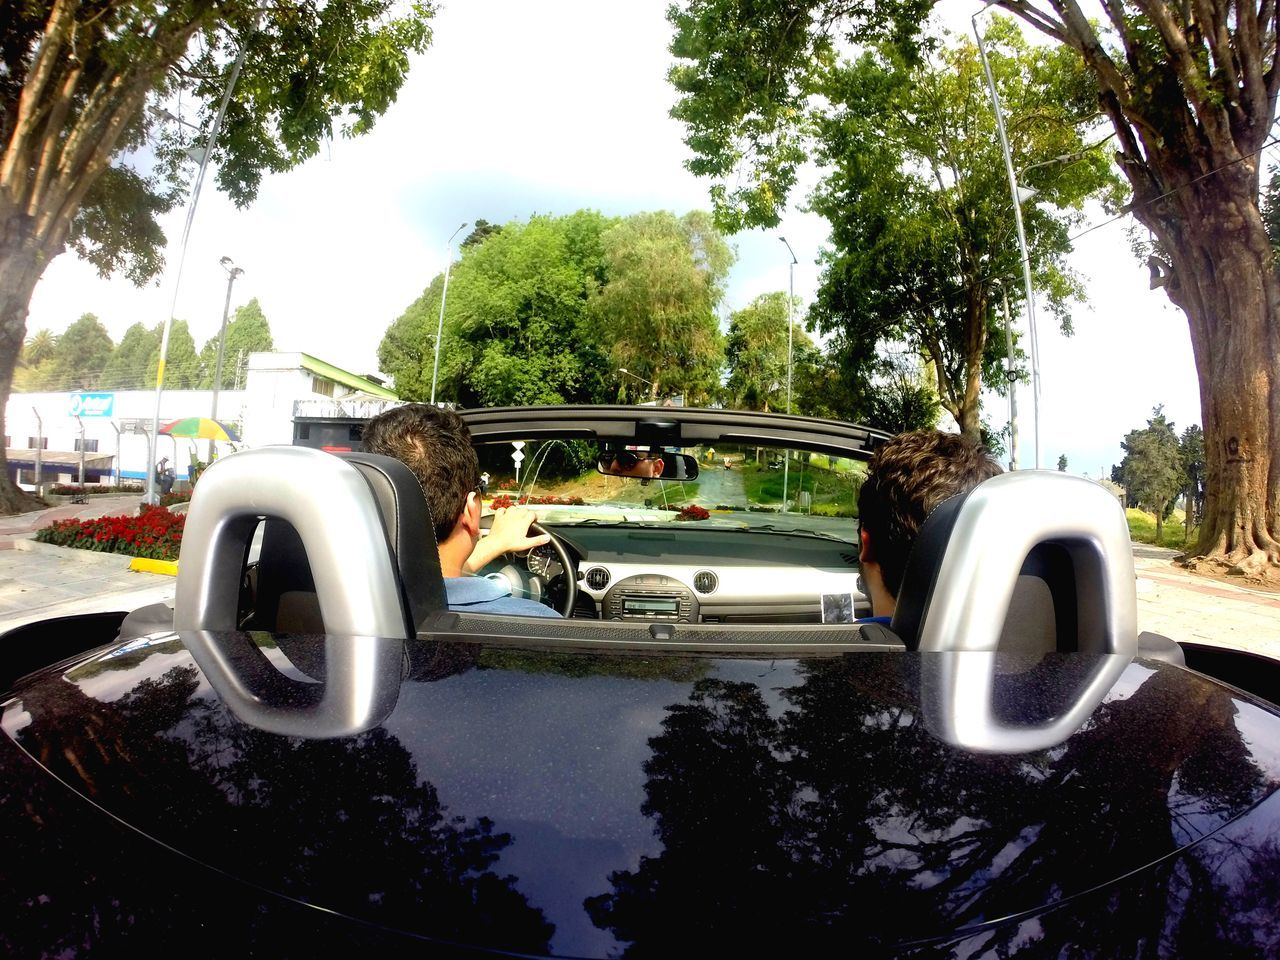 The Drive Tree Car Day Outdoors Sky Nature Cloud Lifestyles Cars Convertible Mazda Speed Friends Mirror Driving